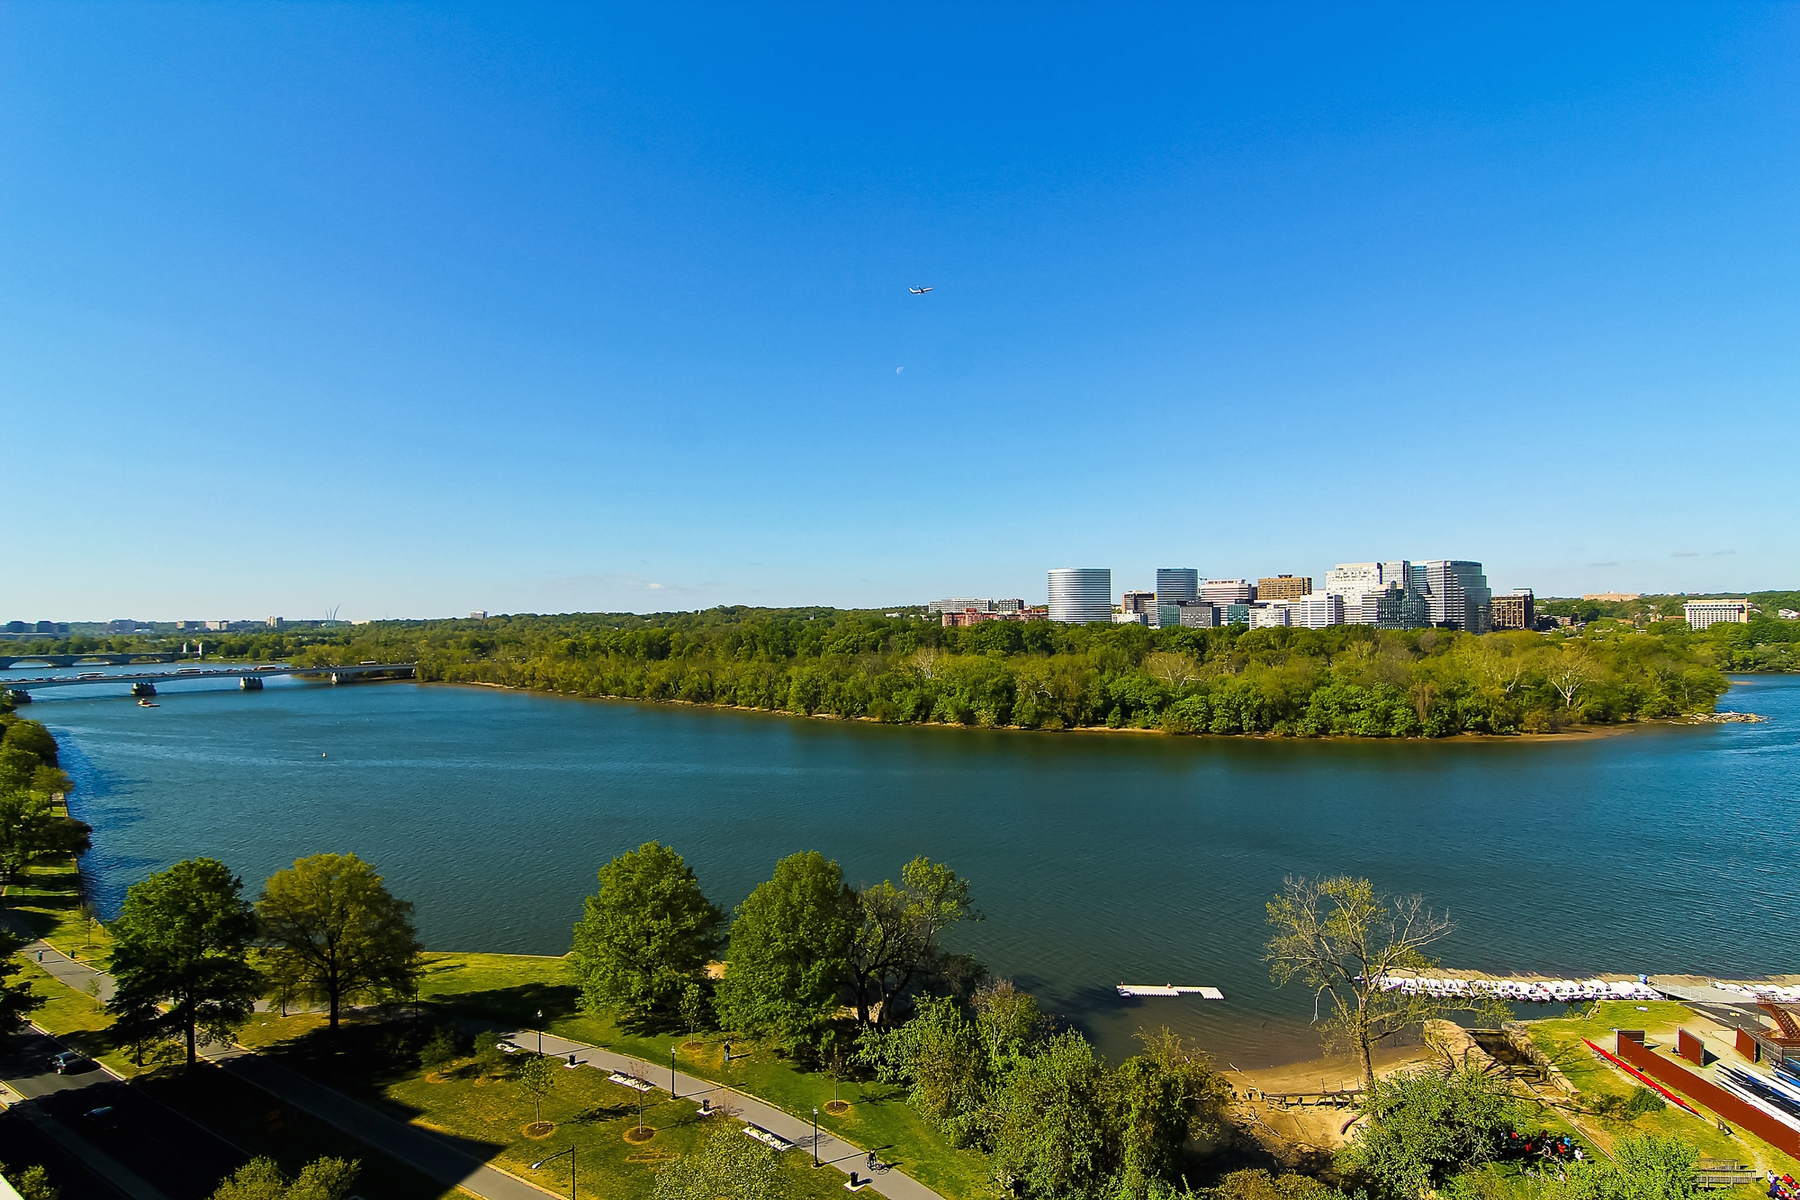 Apartment for Rent at Watergate West 2700 Virginia Avenue Nw 1501 Washington, District Of Columbia 20037 United States